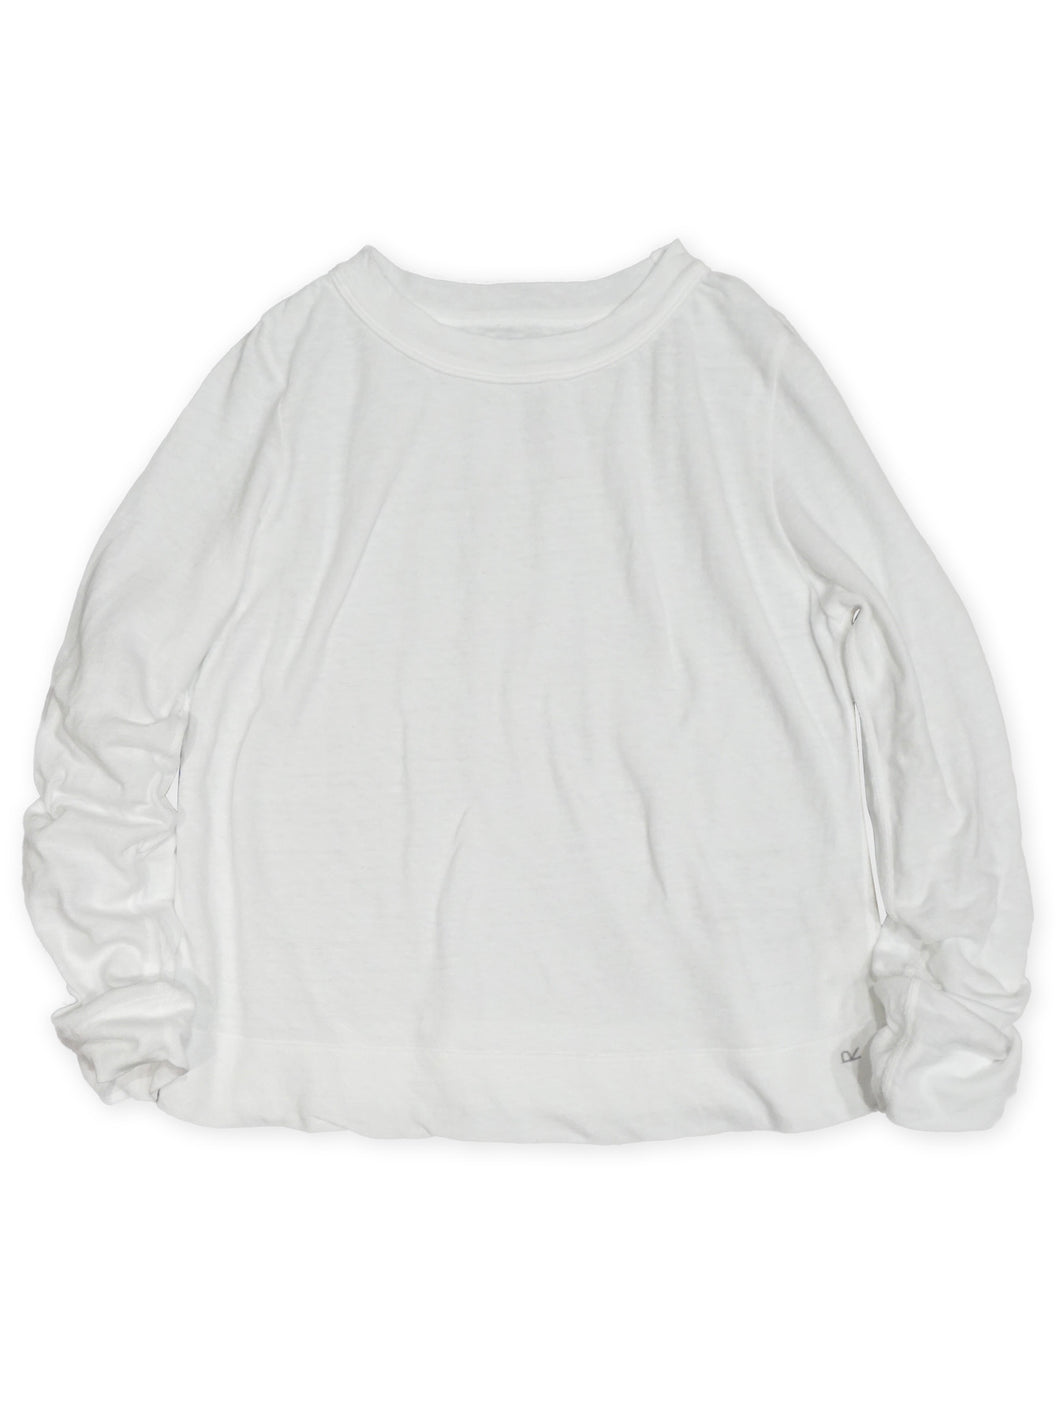 Zimba Super Gauze Square T-Shirt in White